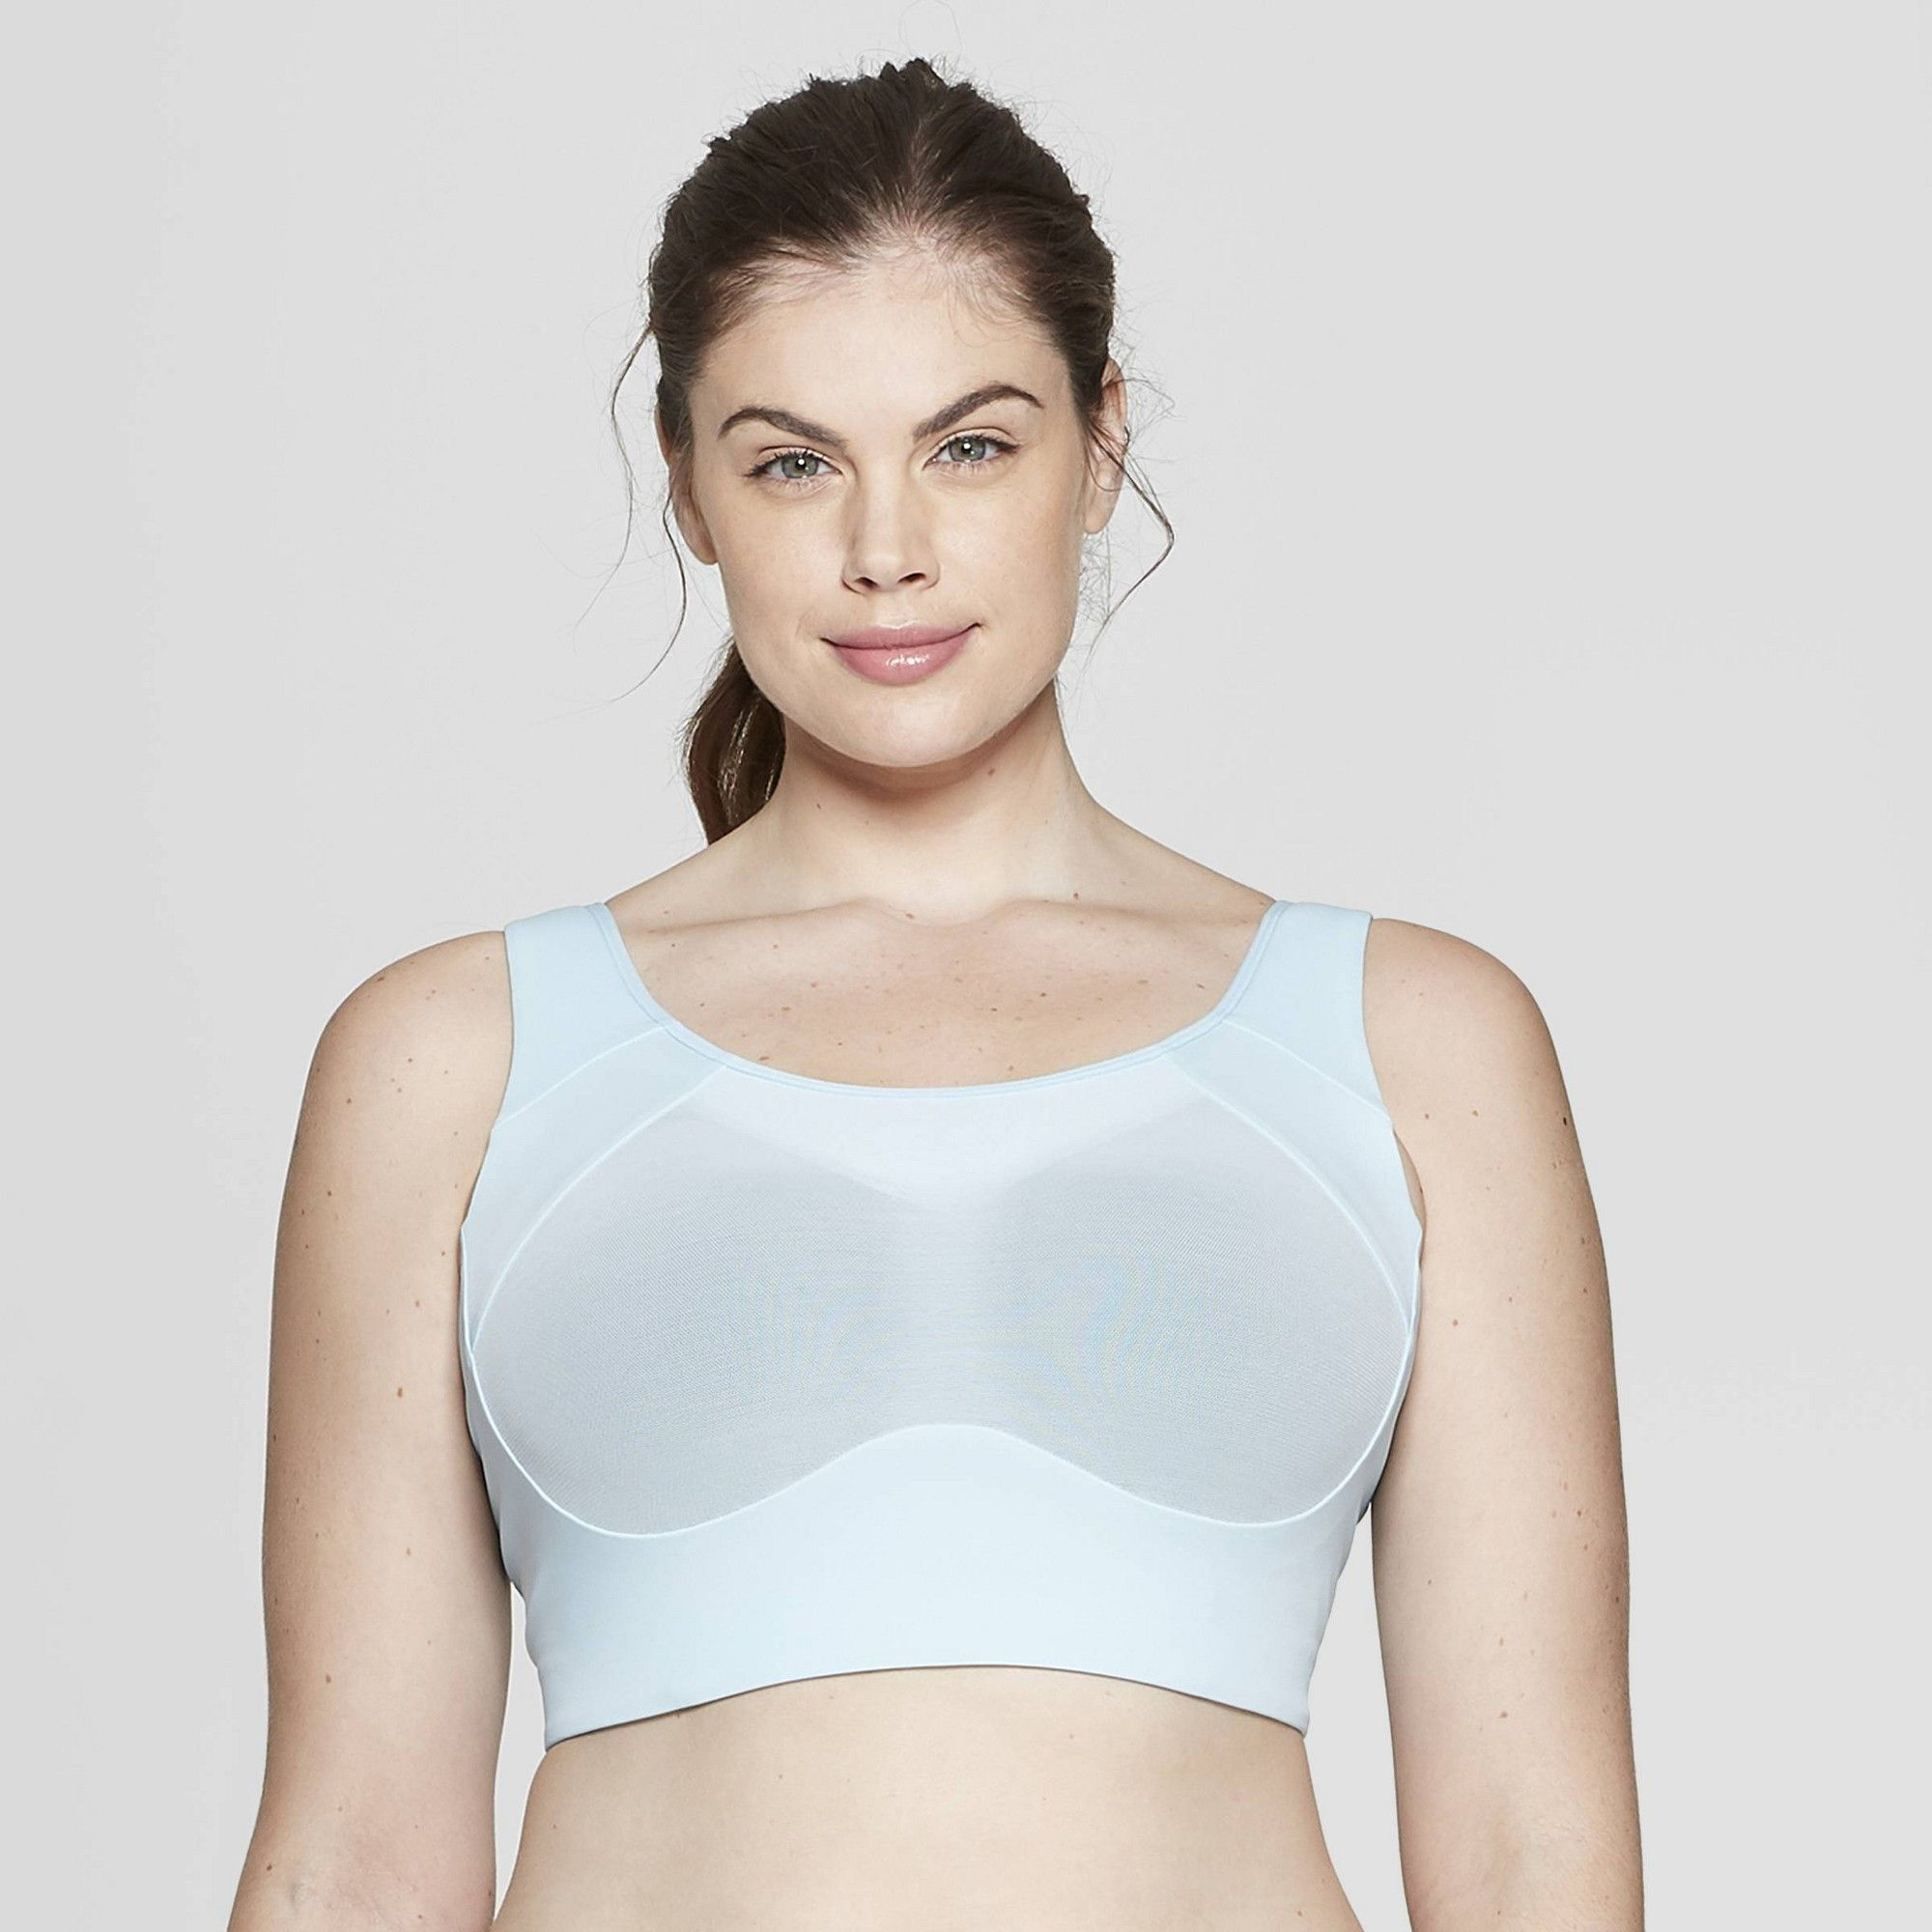 c1b1ceeda5d39 Plus Size Women s Plus Ventilated Sports Bra - C9 Champion Ice Blue ...